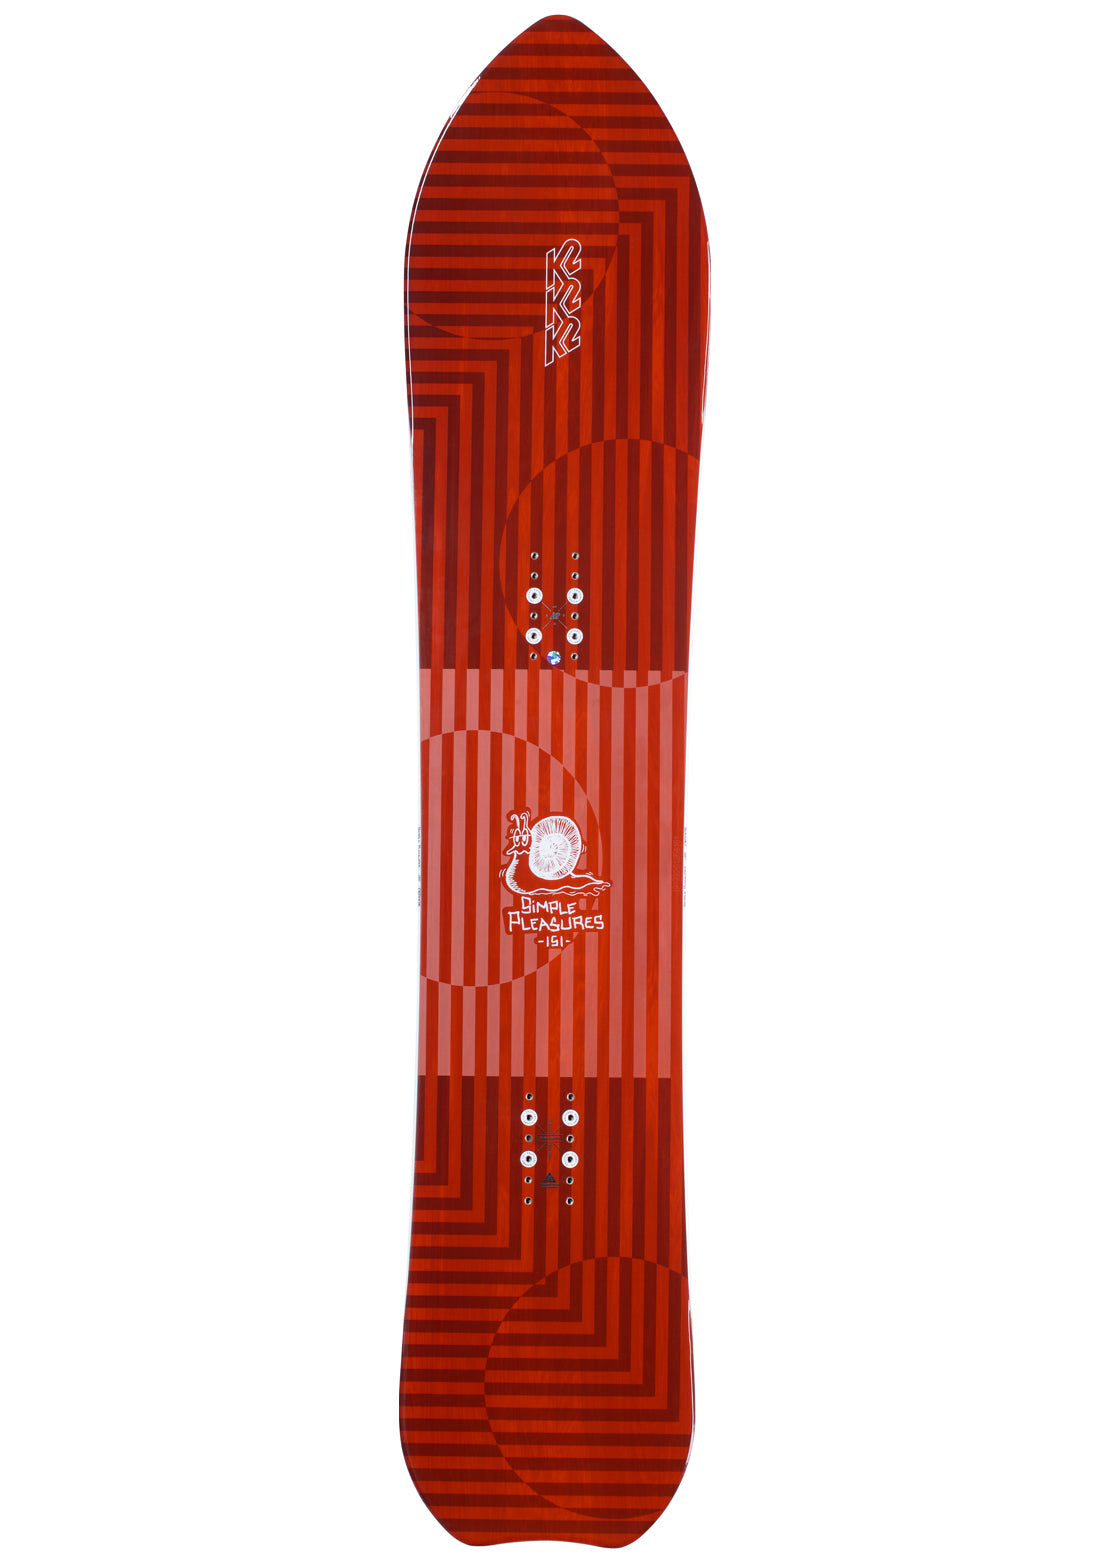 K2 Men's Simple Pleasures Snowboard - 156 cm Multi